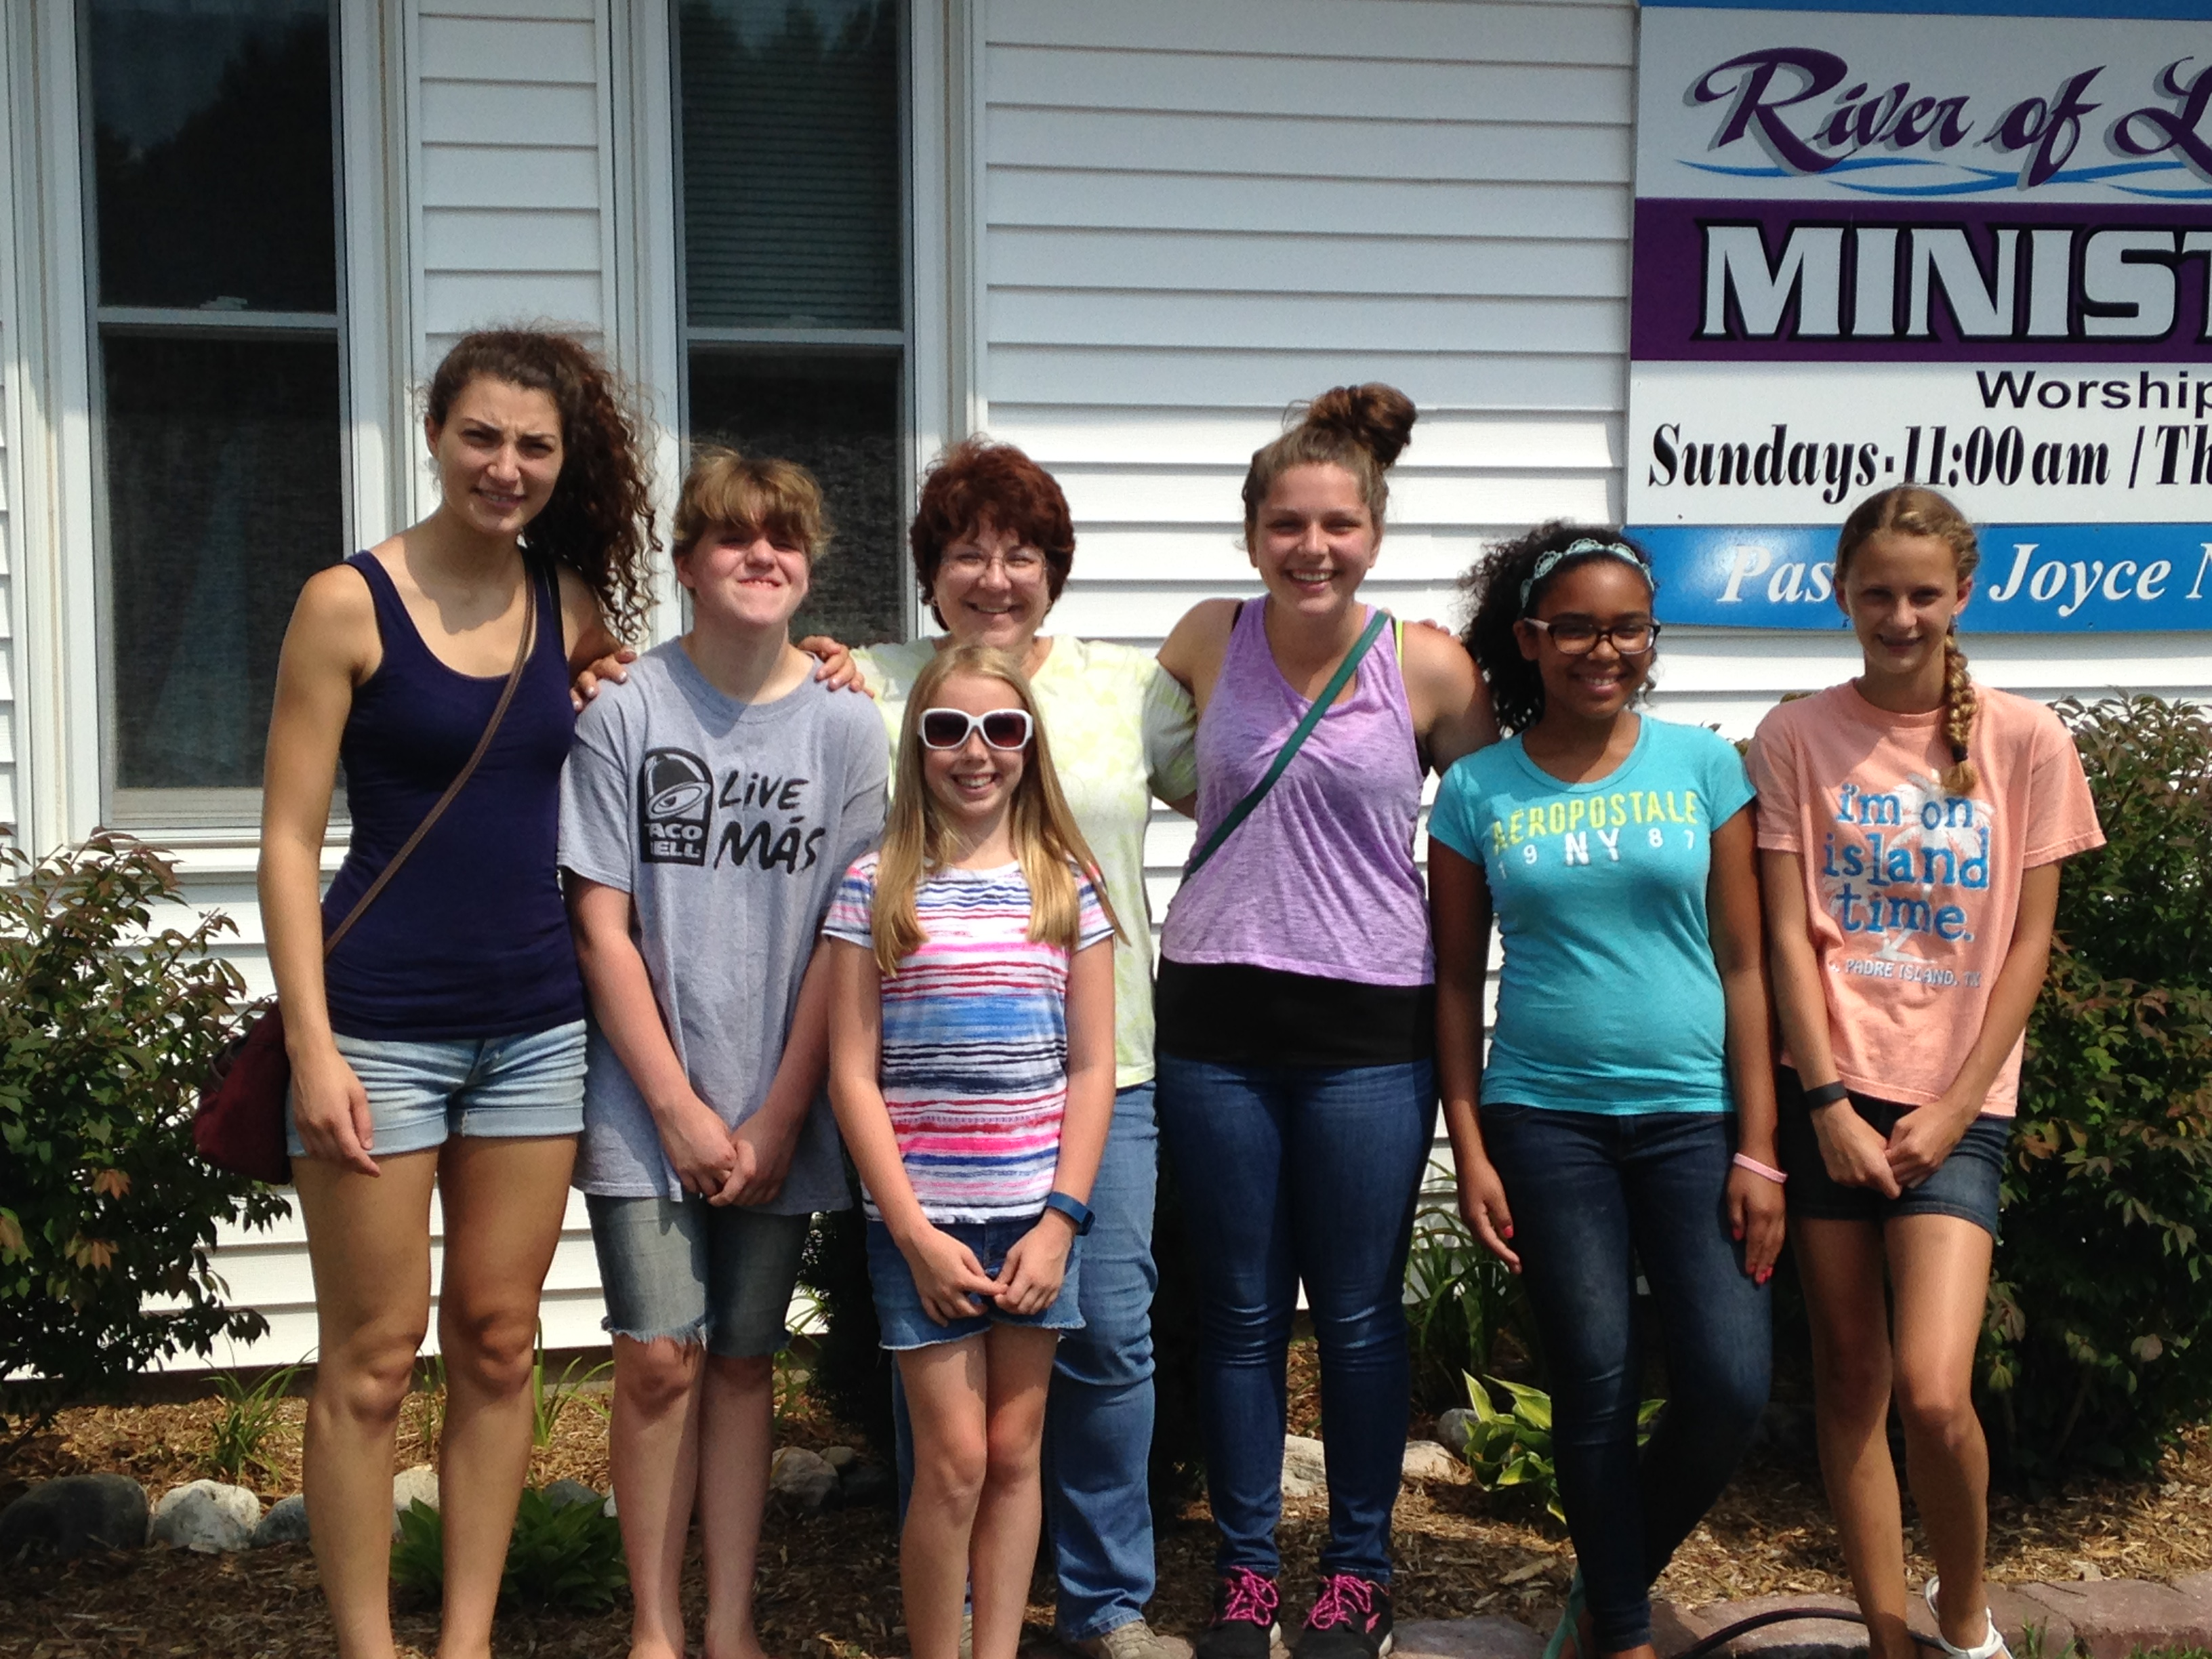 Kathy with youth group